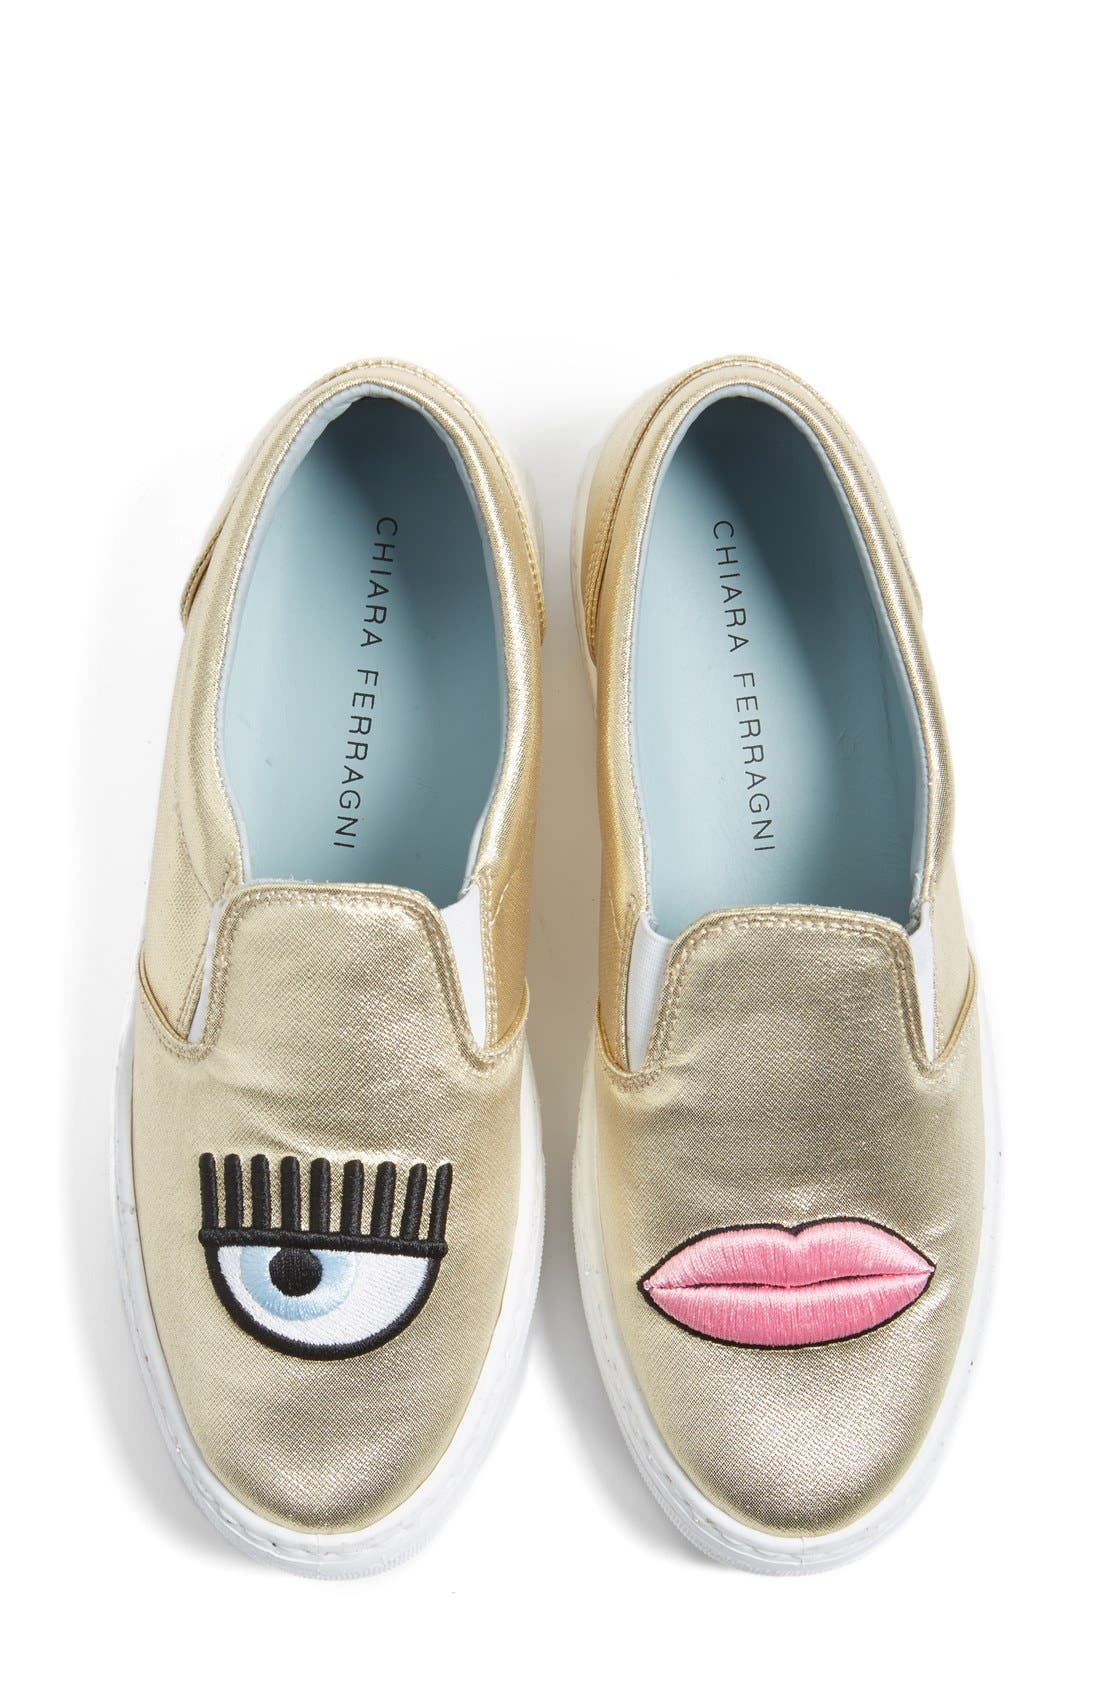 Main Image - Chiara Ferragni Flirting Lips Slip-On Sneaker (Women)